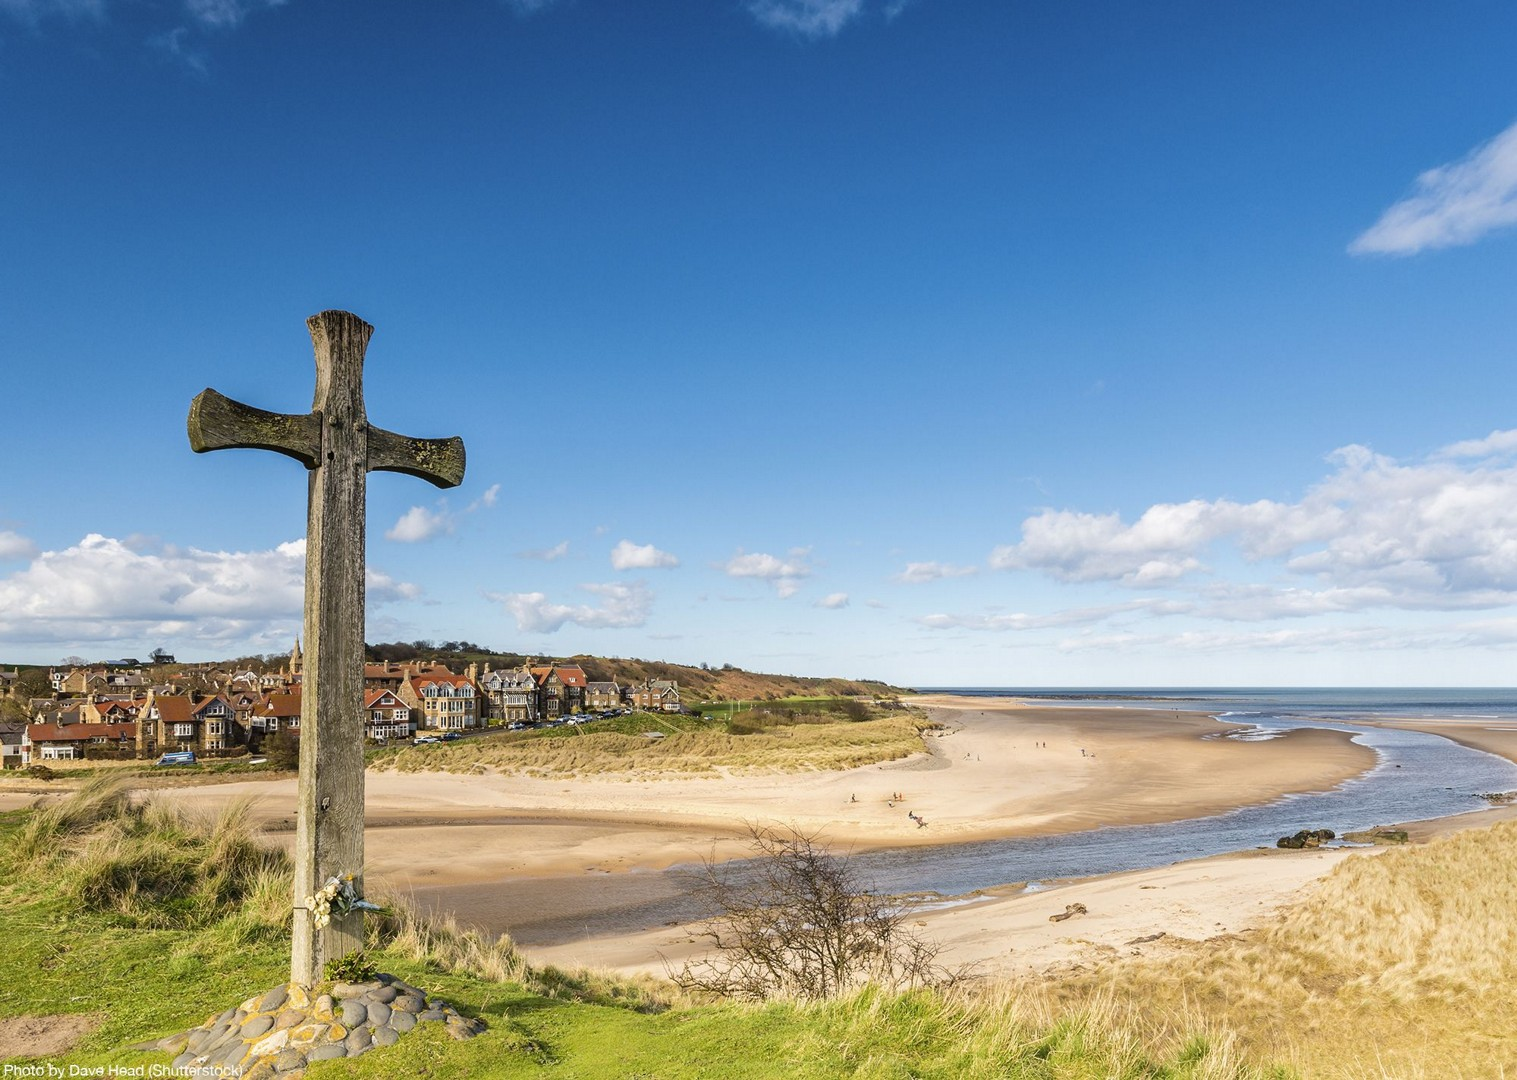 warkworth-beaches-cycling-holiday-bike-tour-self-guided-leisure-uk-england.jpg - UK - Northumberland - Alnmouth - Guided Leisure Cycling Holiday - Leisure Cycling